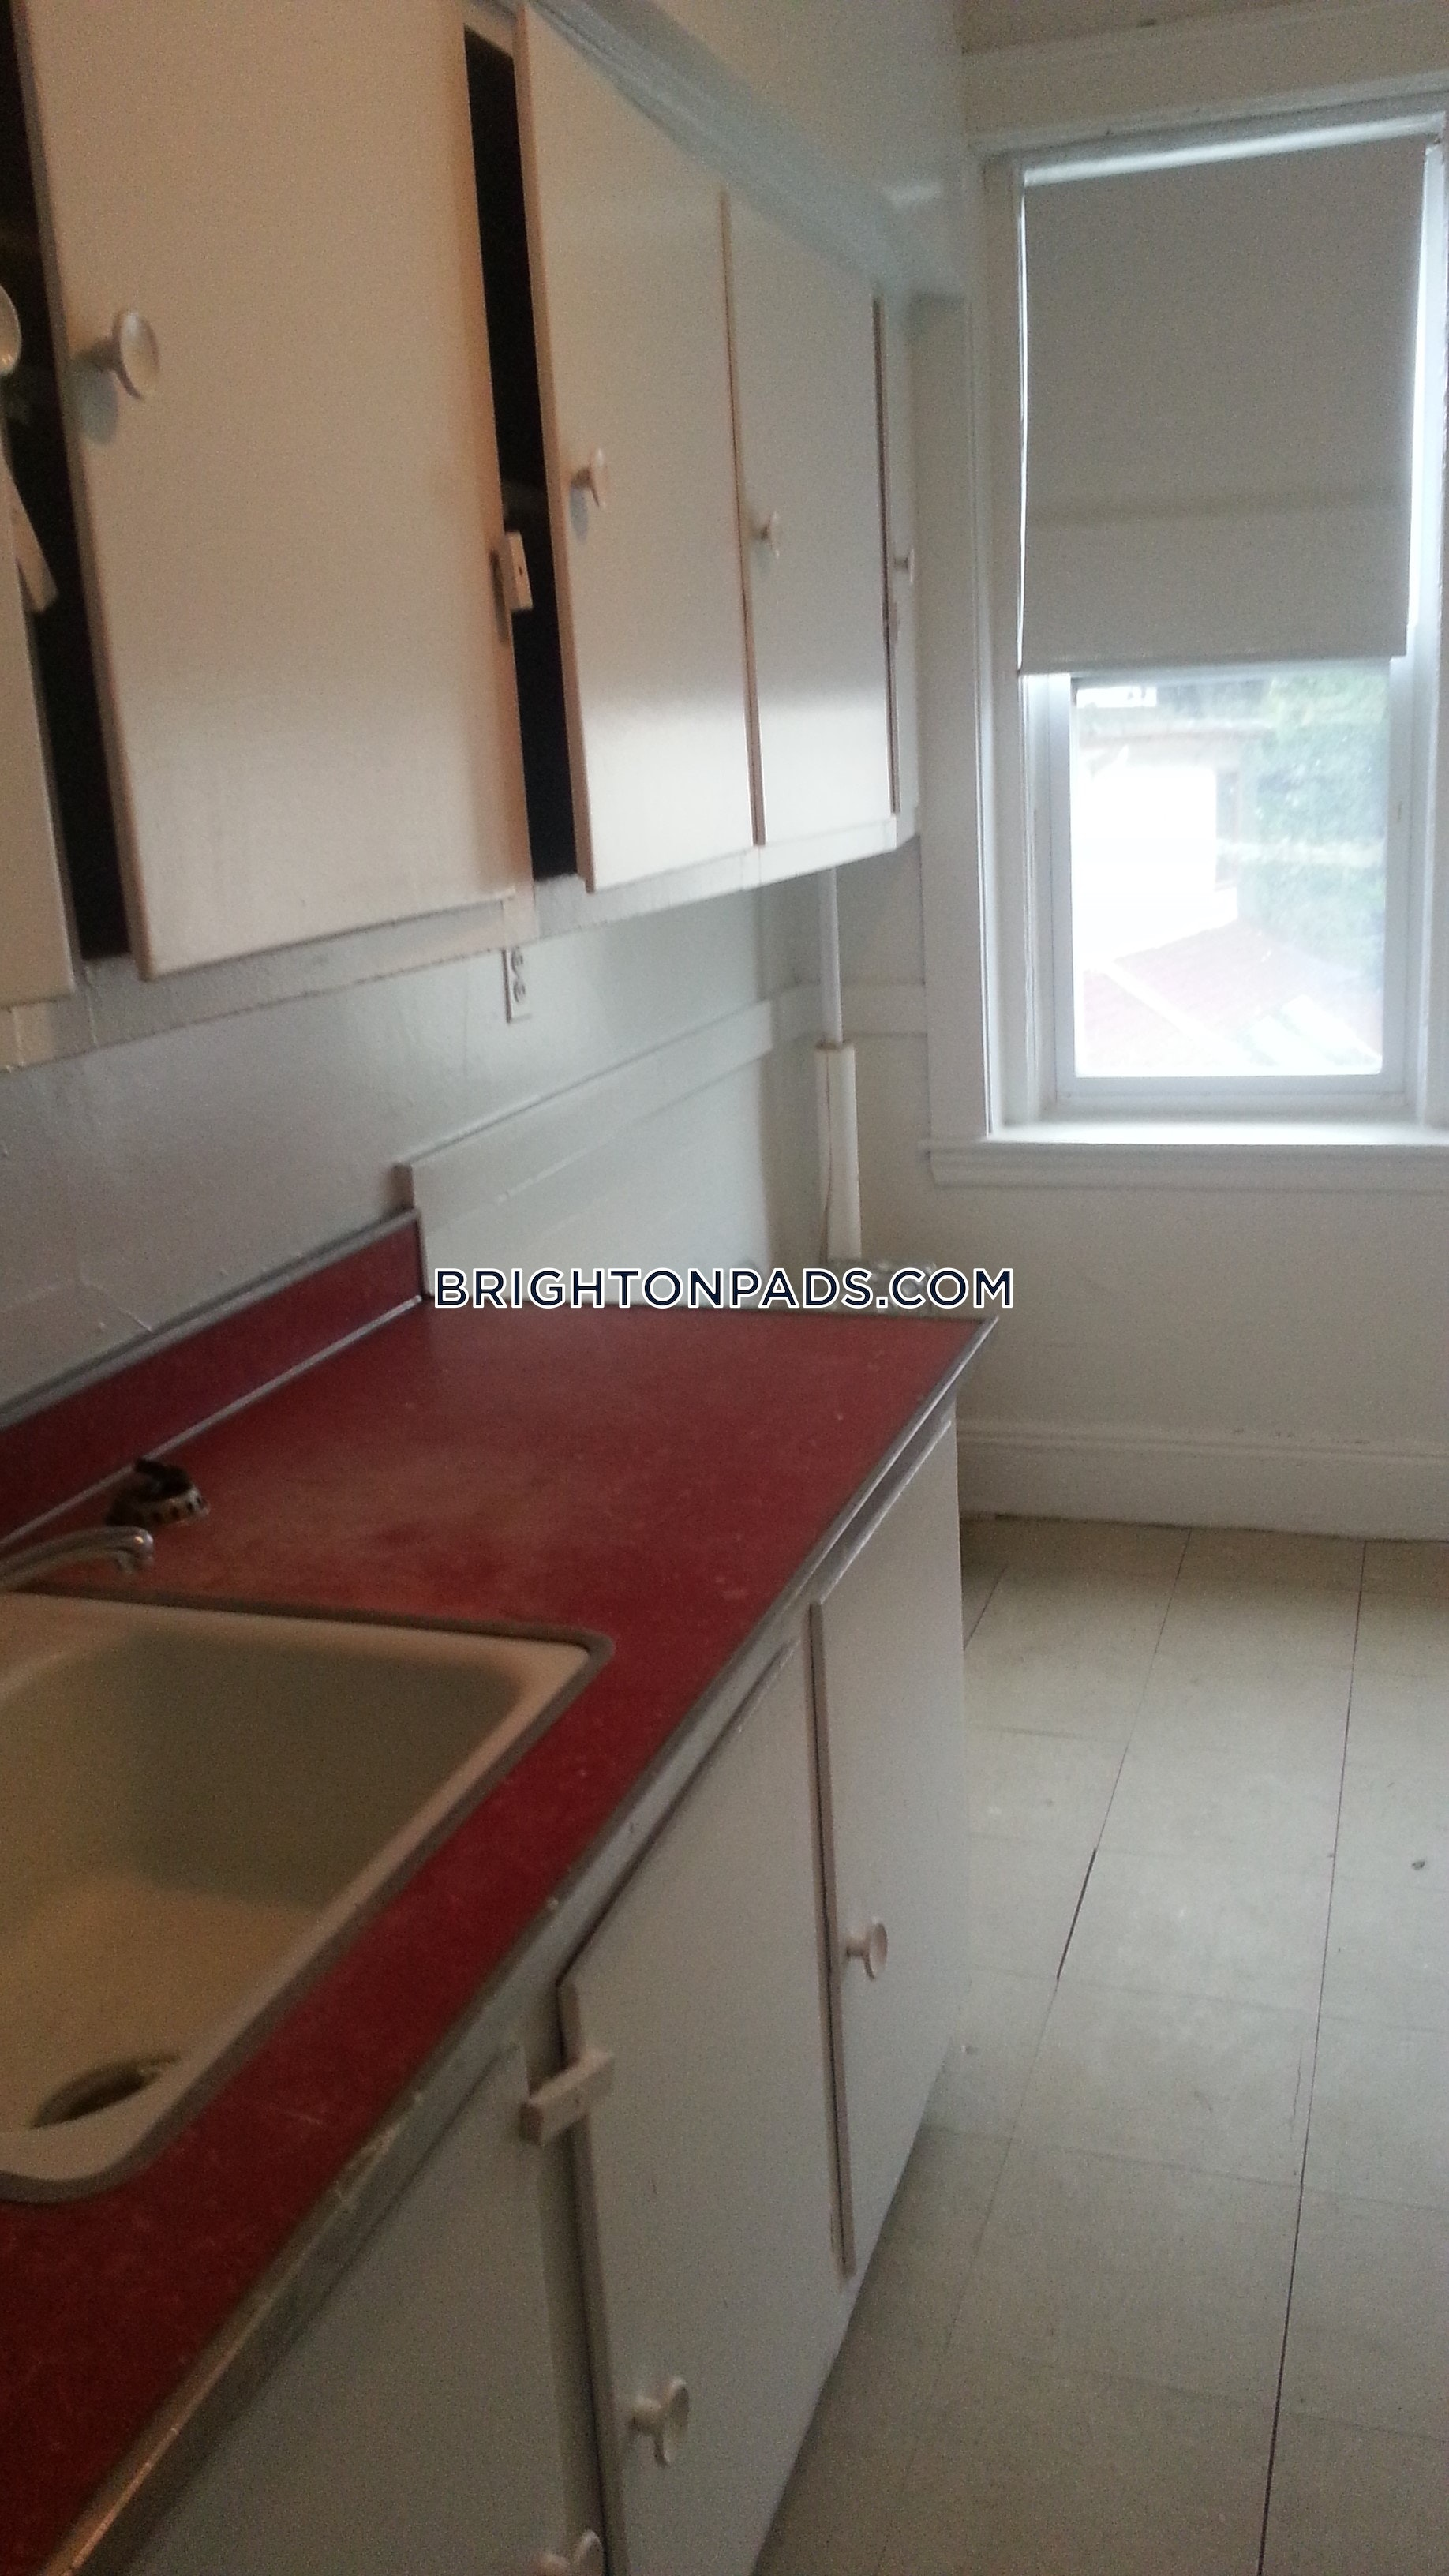 2 Beds 1 Bath  Boston  Brighton  Cleveland